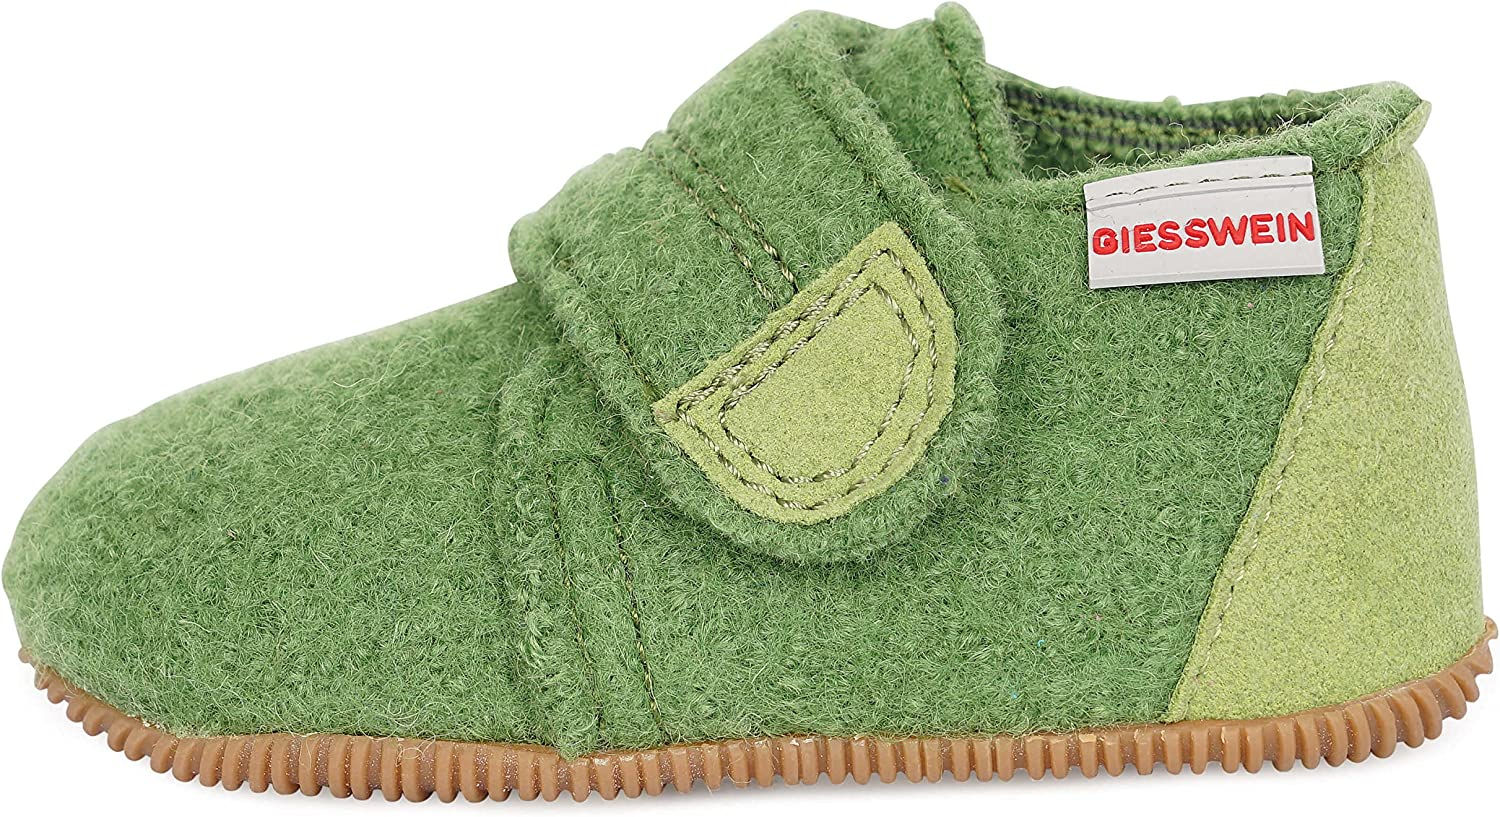 1 year warranty Online limited product Giesswein Boys' Slippers